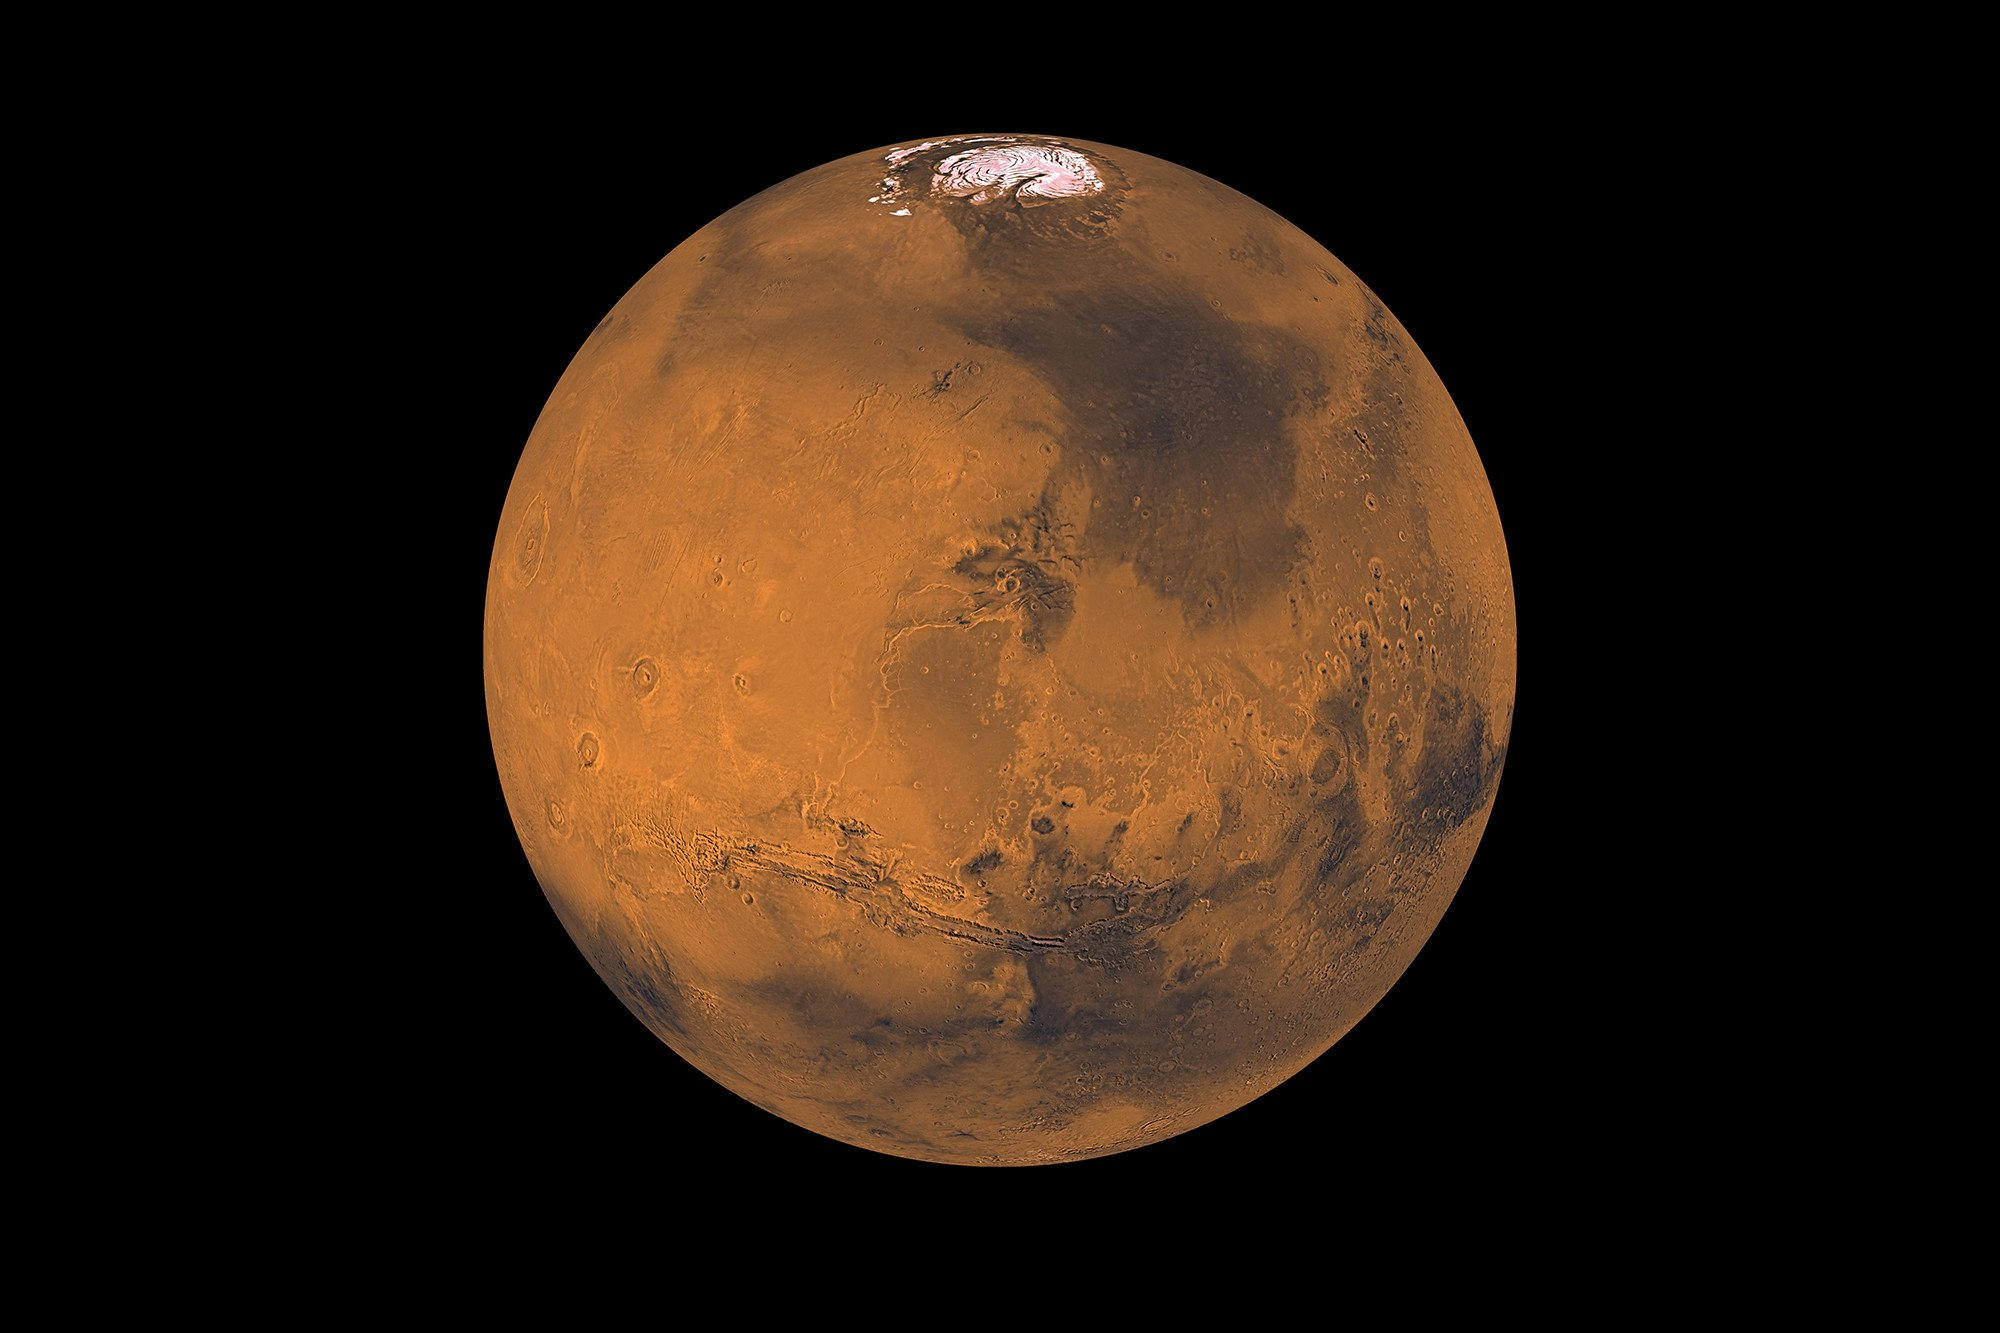 Scientists find ice below Mars' surface